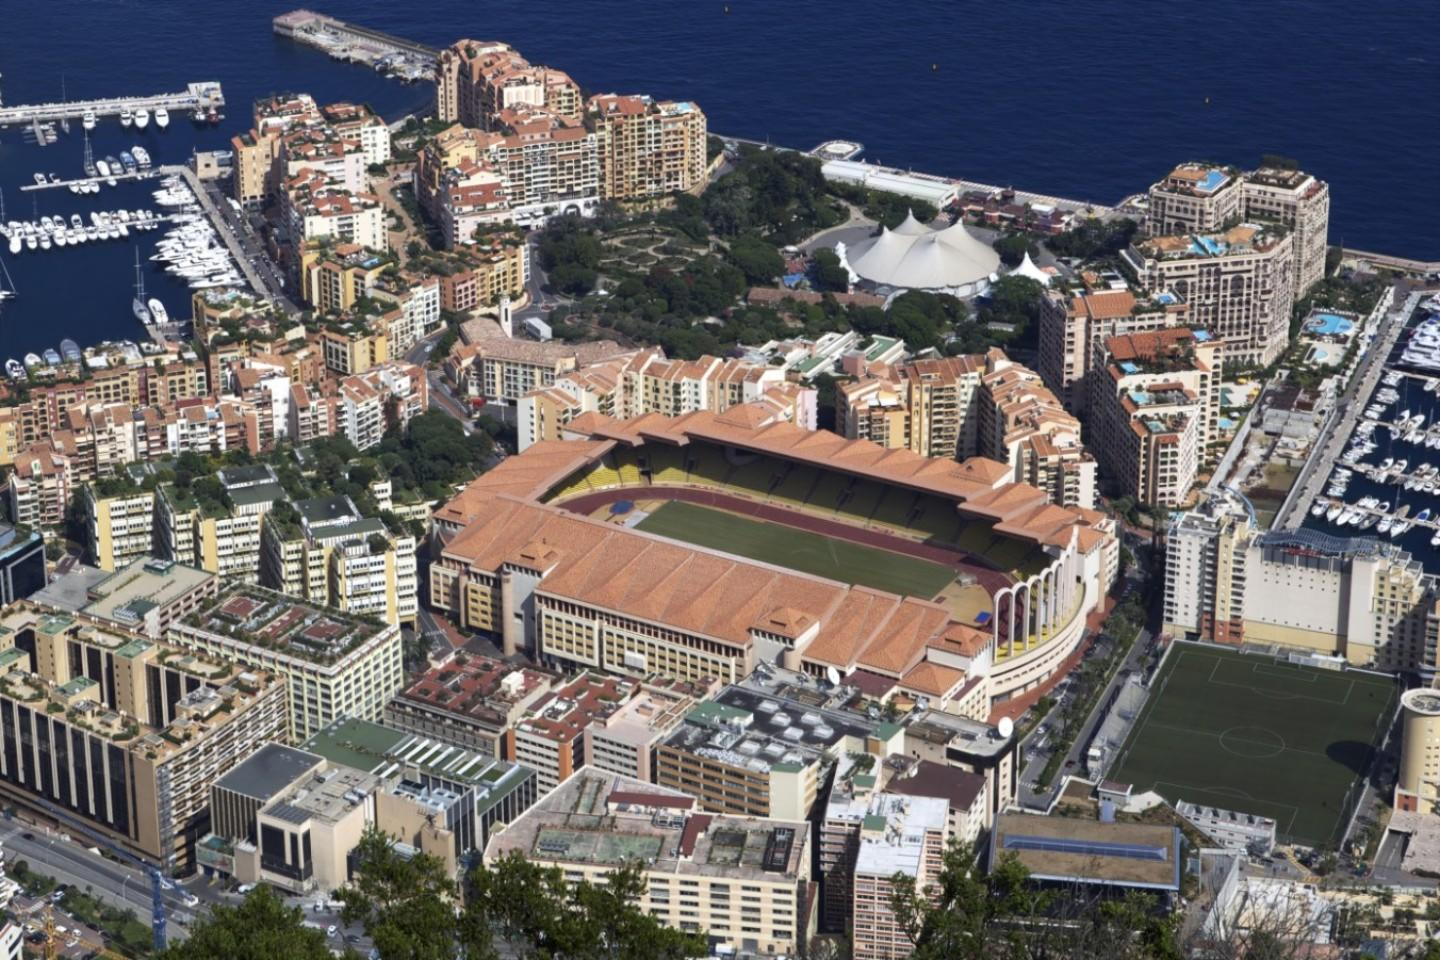 Monaco will be Host of the 2019 FIFCO World Corporate Champions Cup